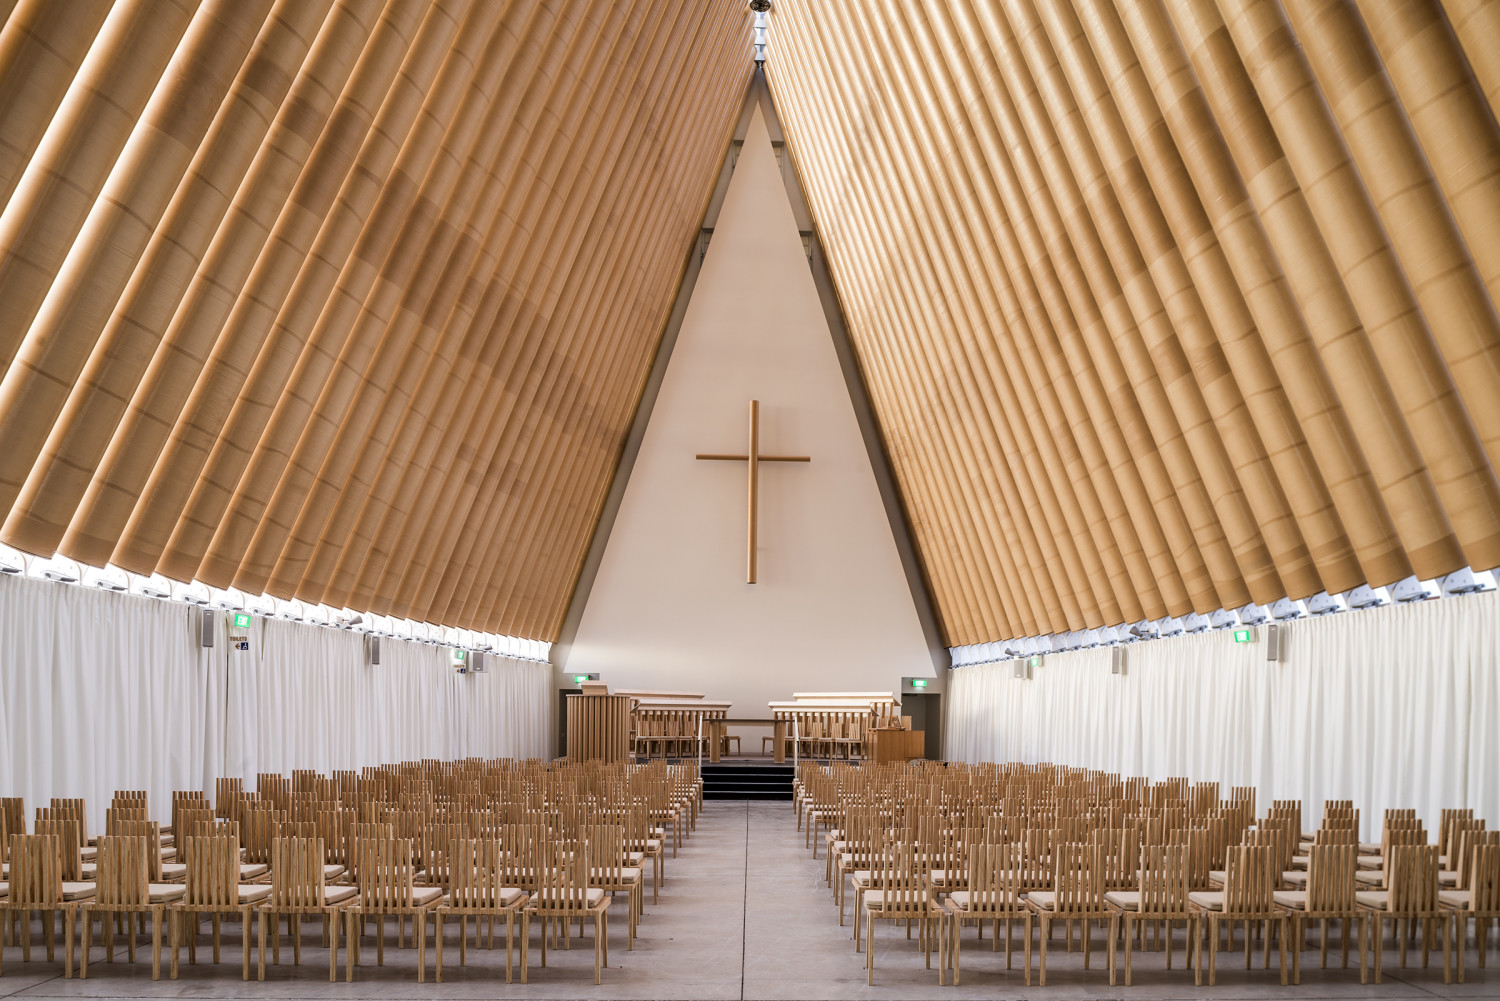 Cardboard Cathedral, New Zealand 2013,  Photo by Stephen Goodenough